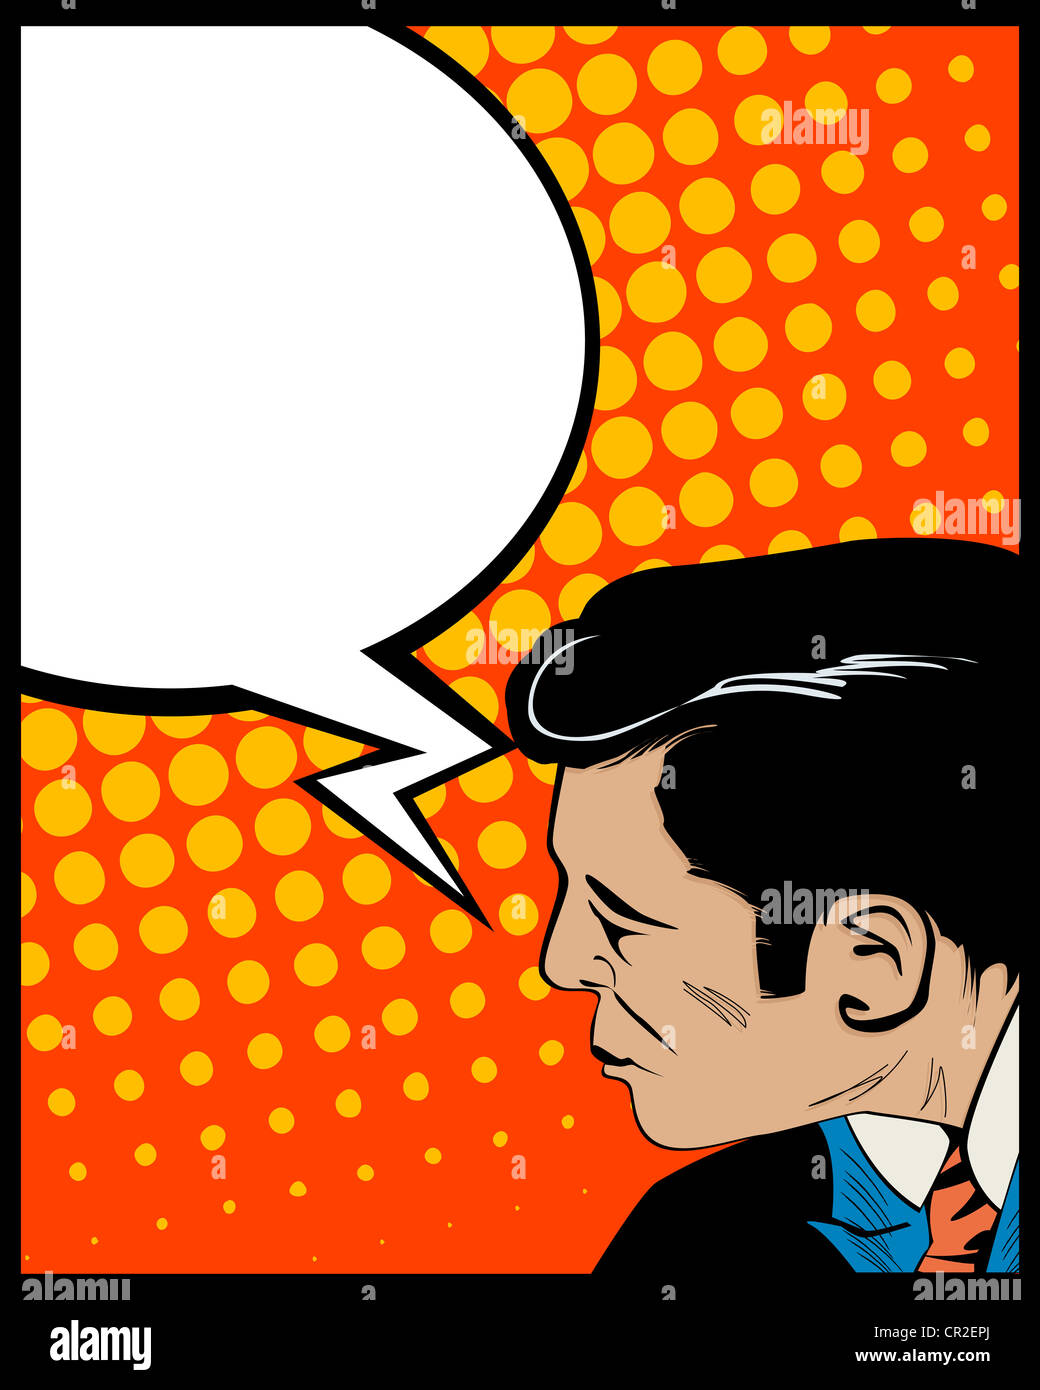 Pop Art style graphic with man and speech bubble Stock Foto